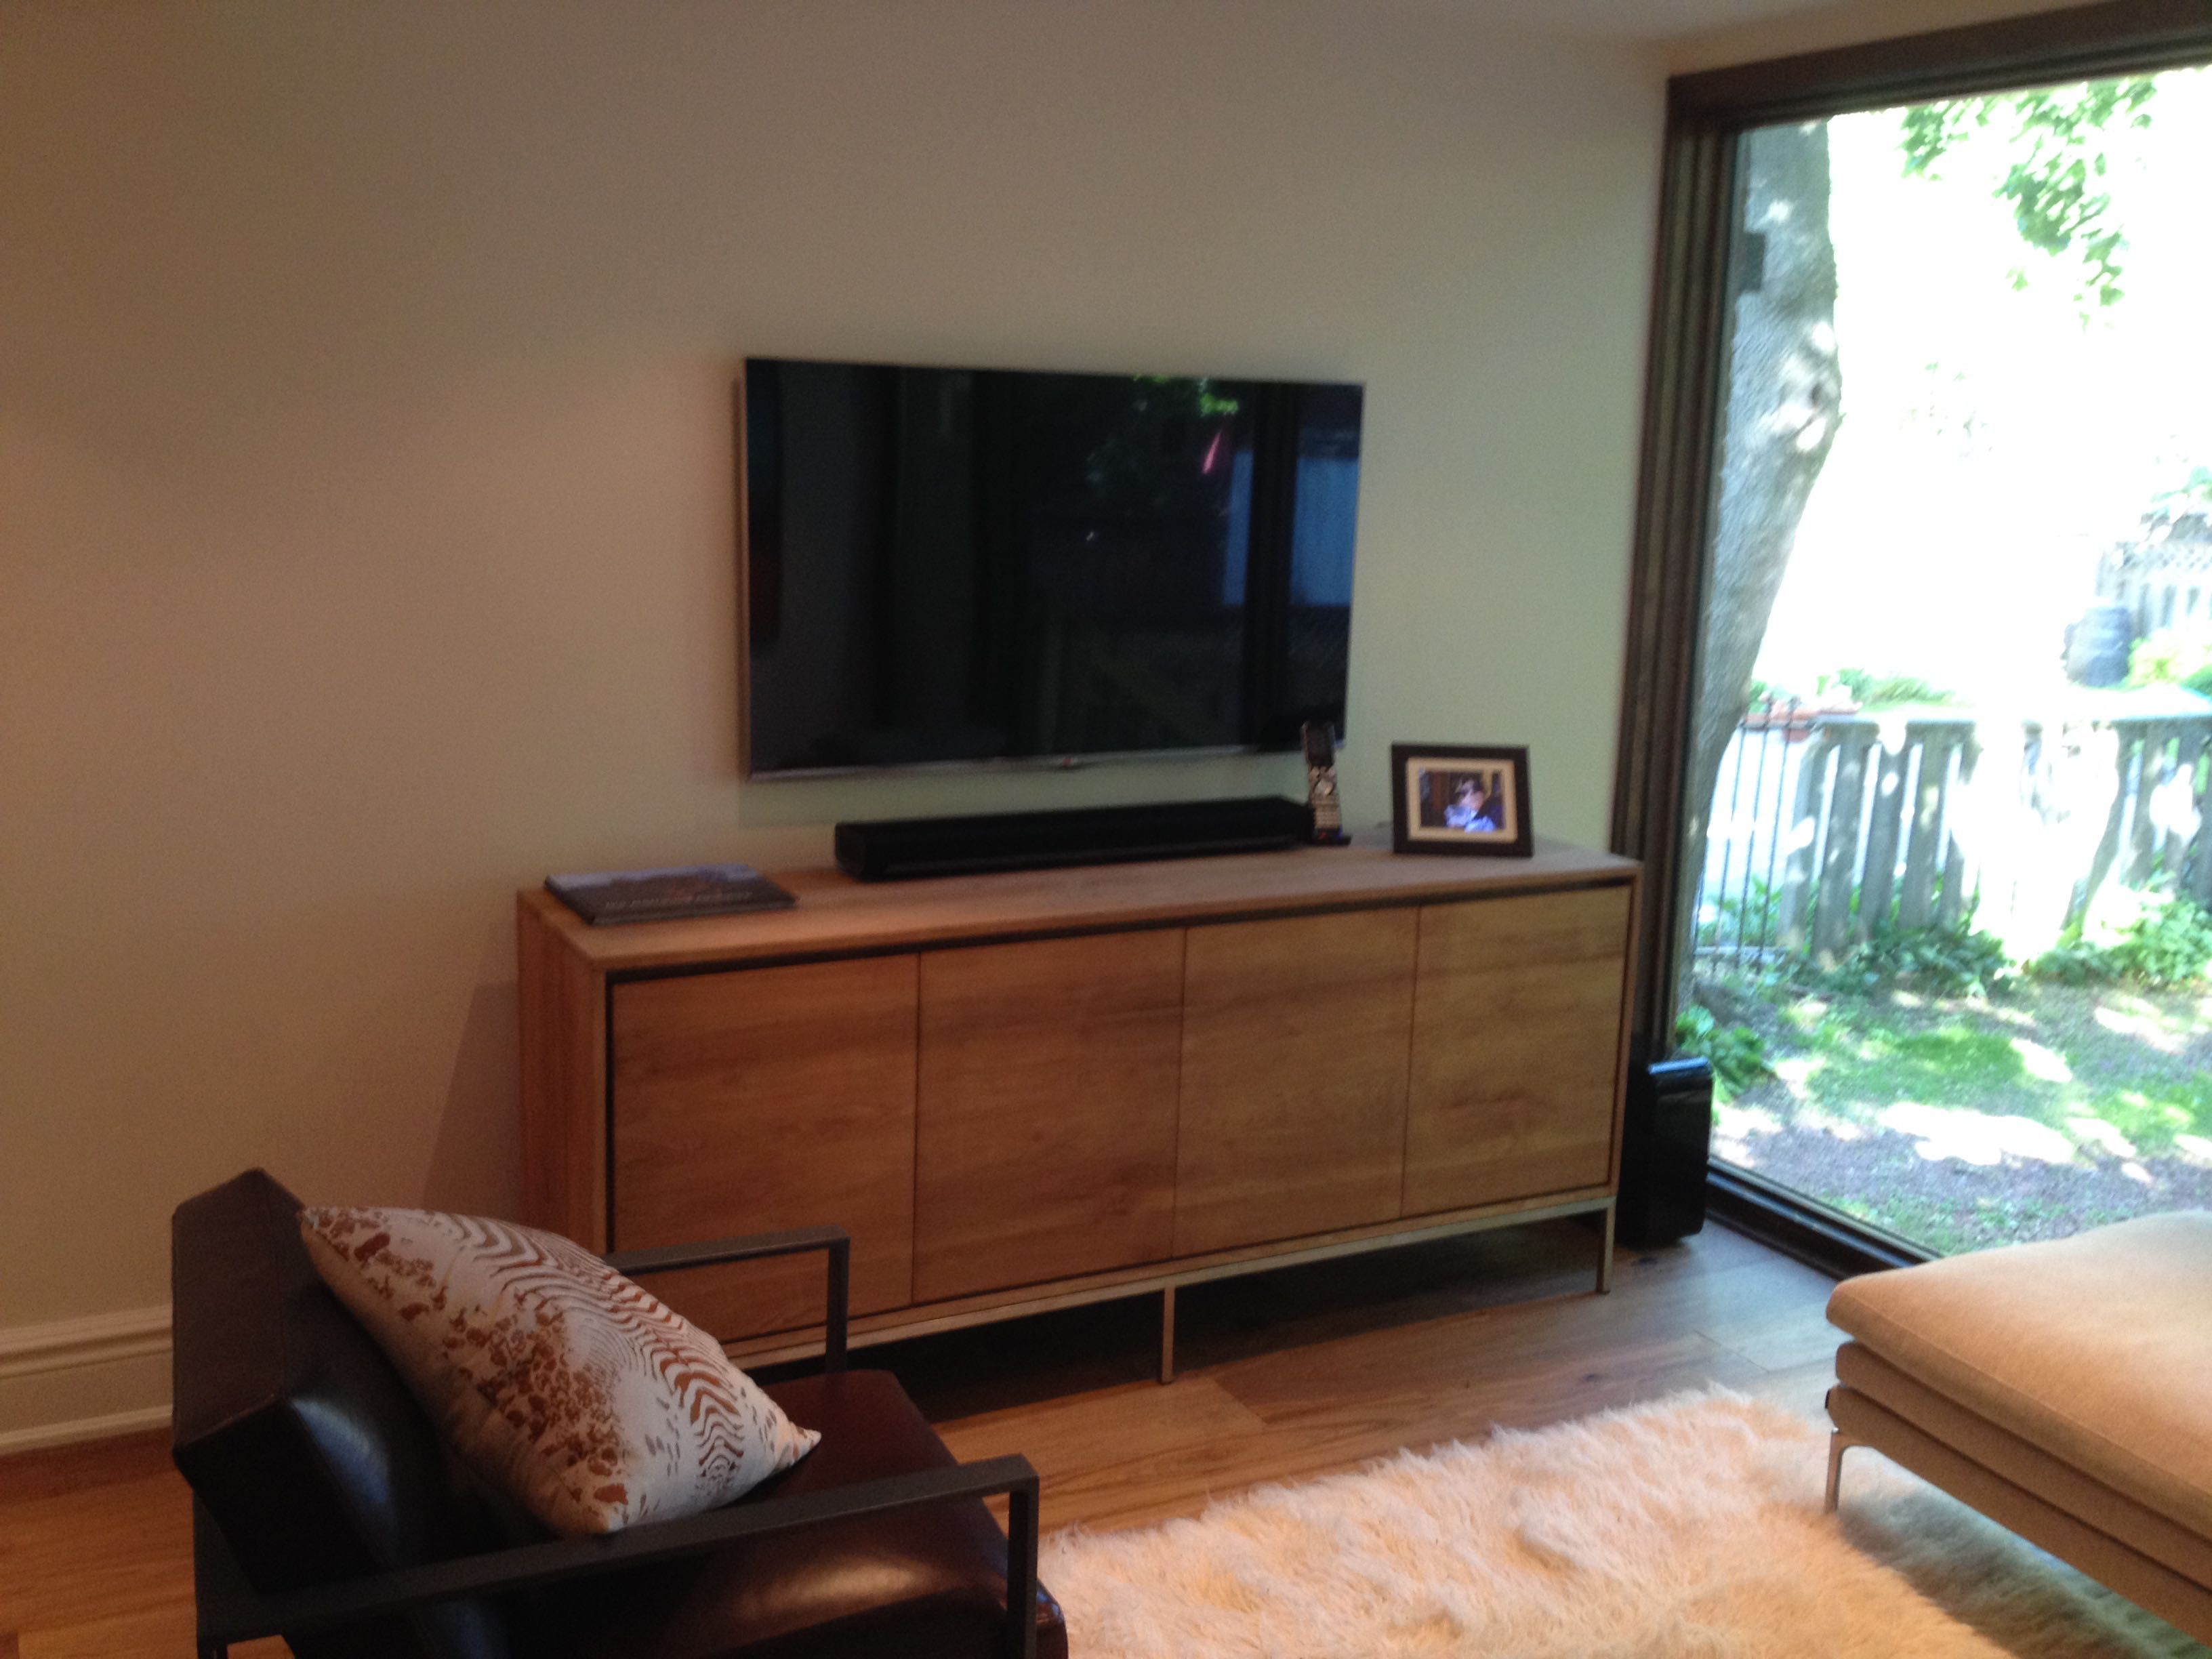 Wall Media Cabinet Sonos Playbar Sitting On Media Cabinet With 55 Samsung Tv Wall